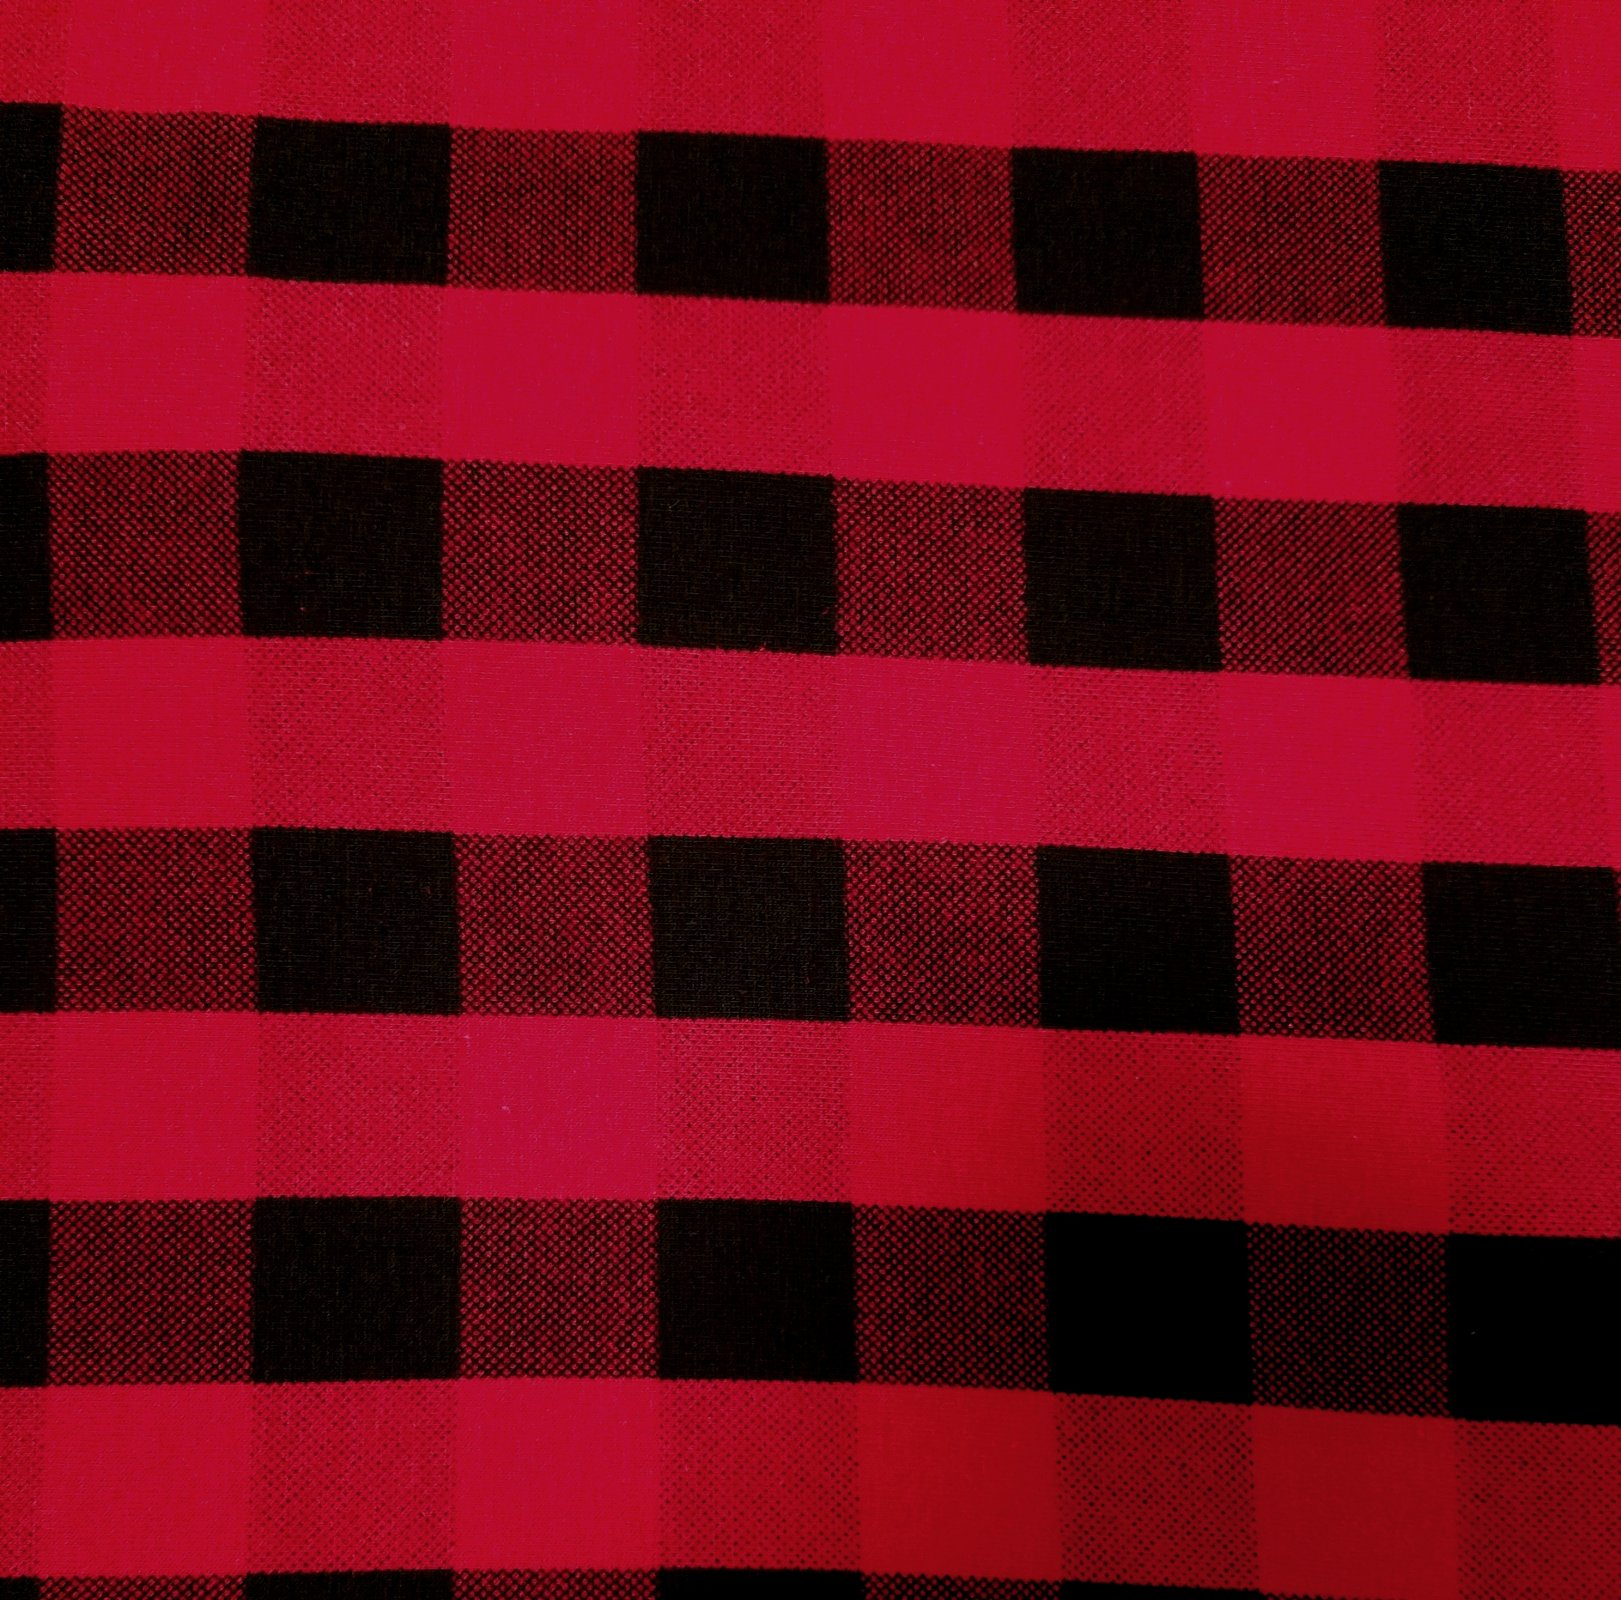 Checkerboard - Cotton/Spandex Knit